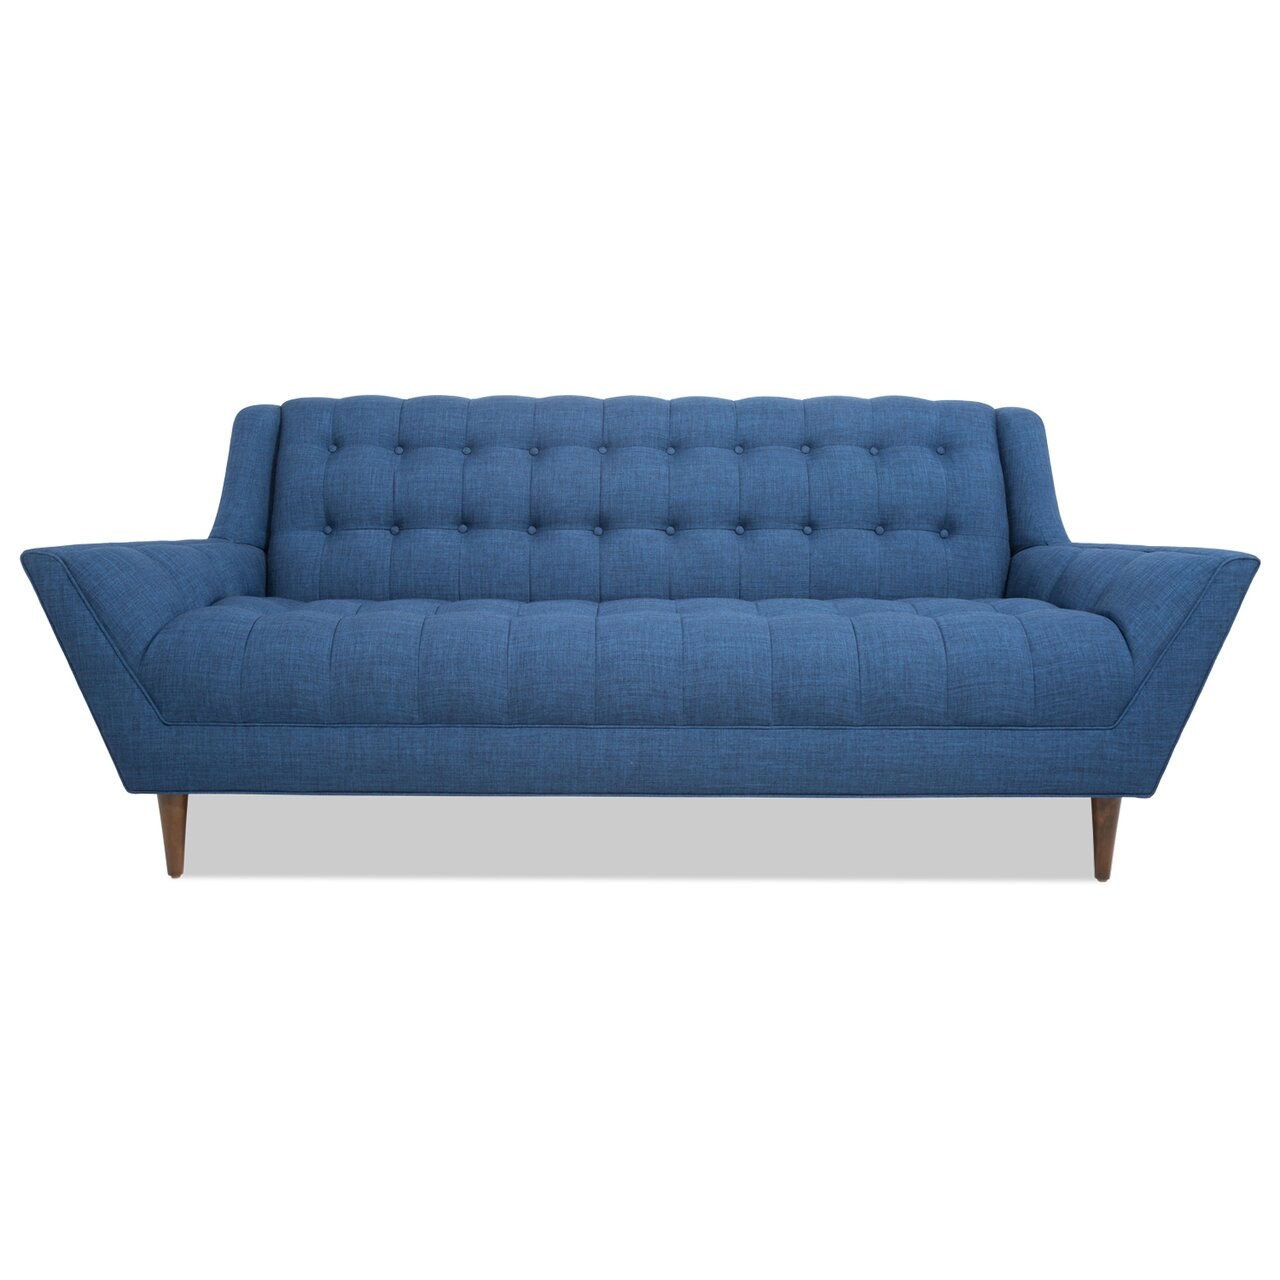 Danish modern sleeper sofa danish sleeper sofa amsterdam for Sleeper sectional